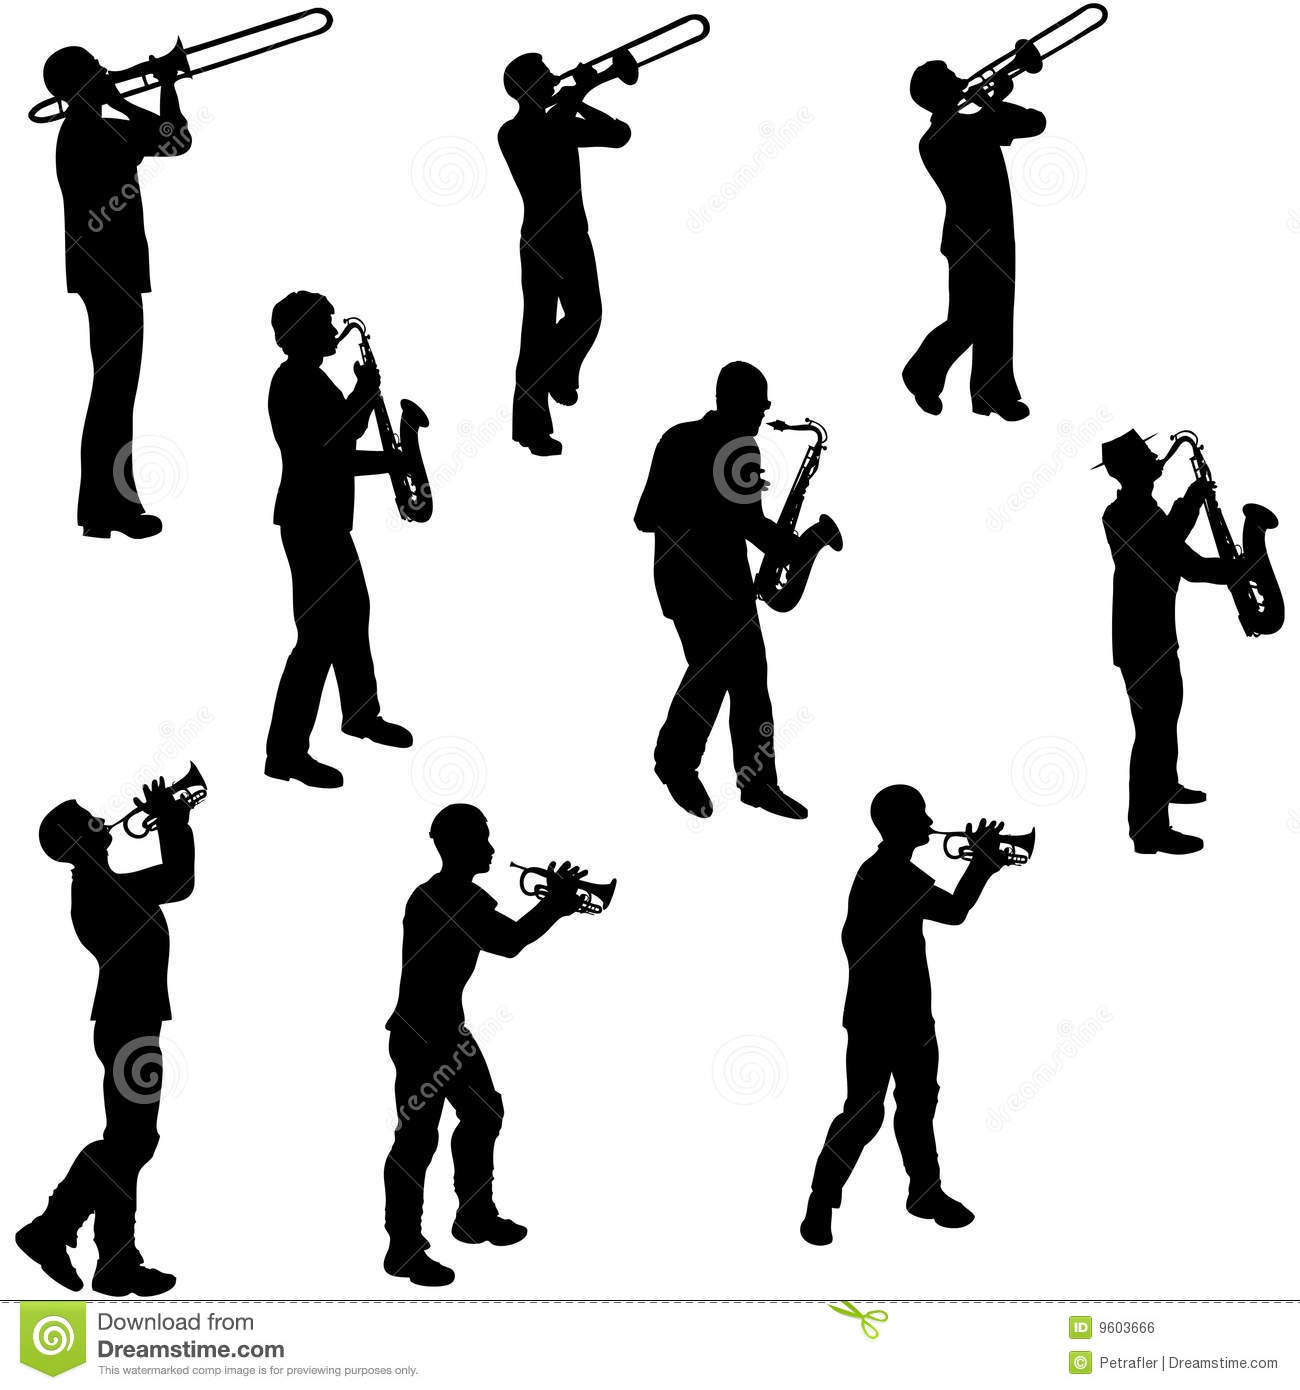 brass musician silhouettes stock vector illustration of element